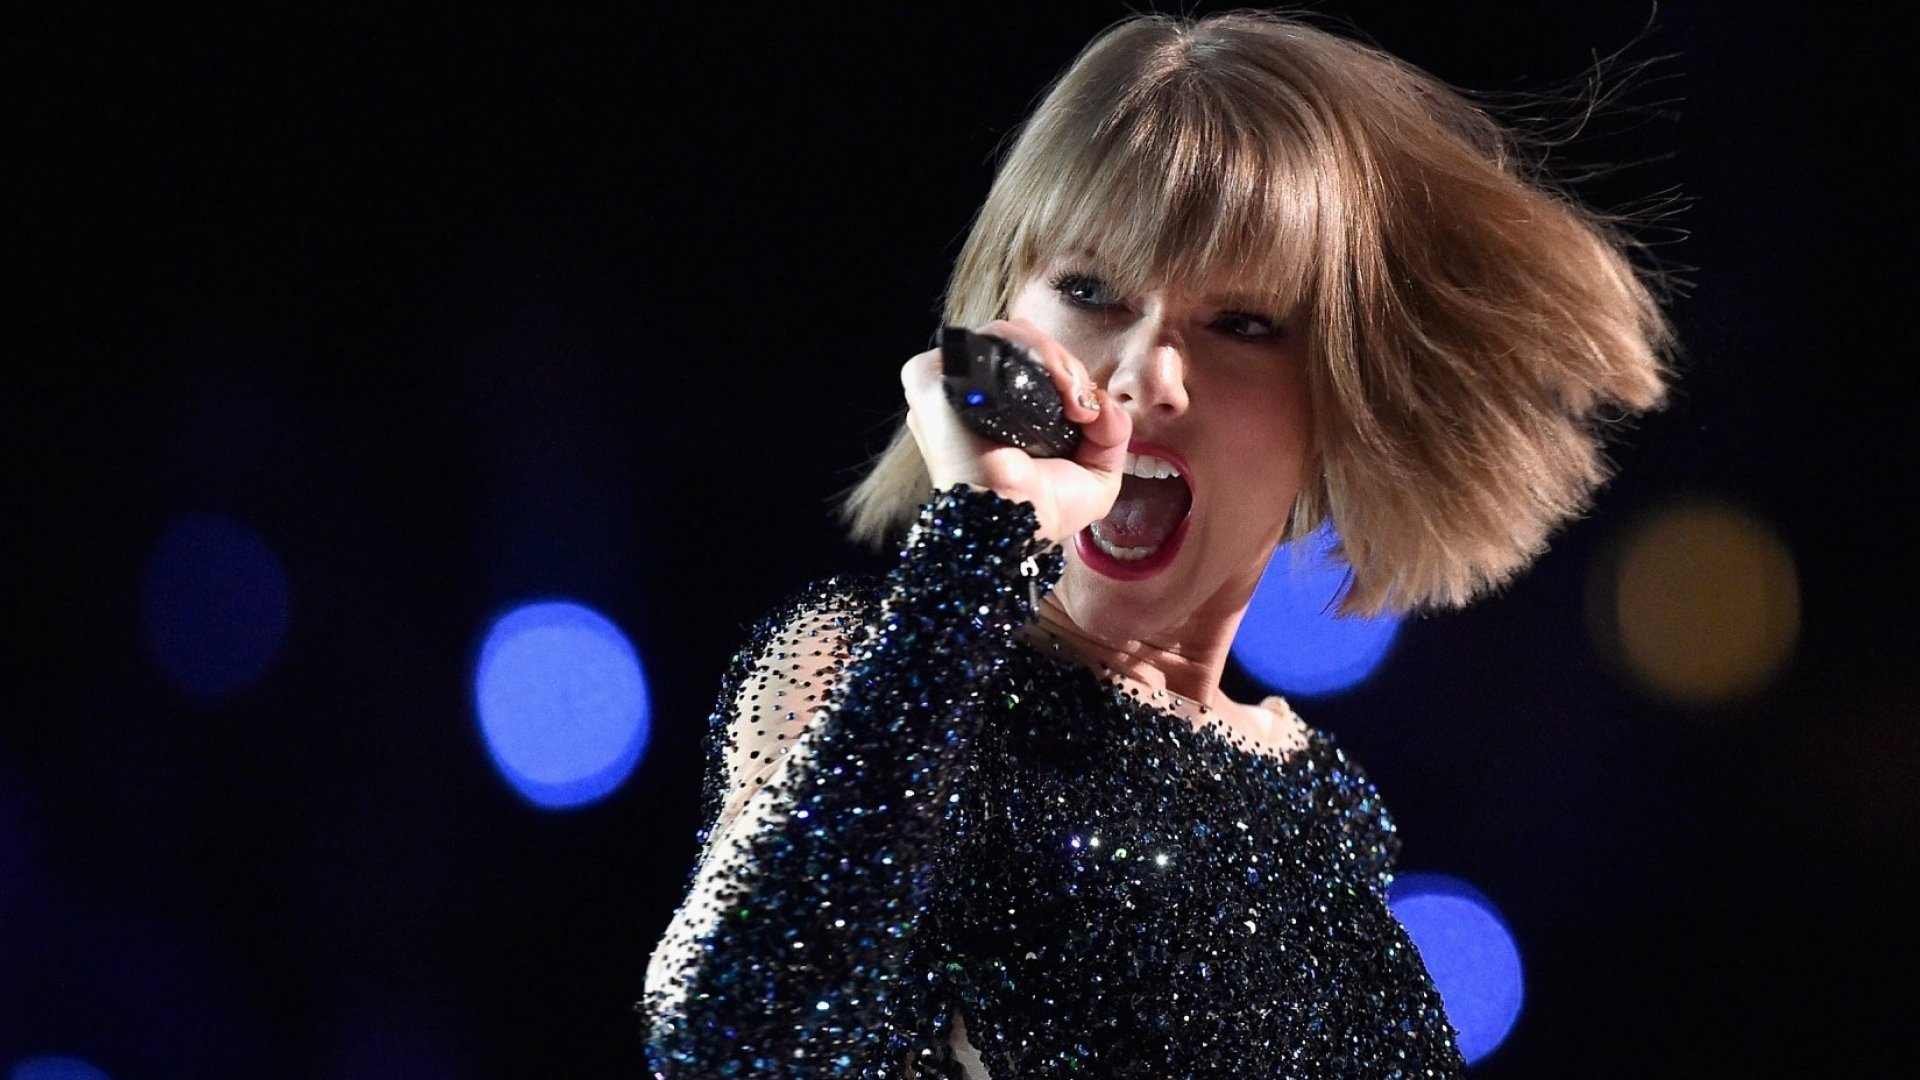 Taylor Swift Made a Rare and Colossal Social Media Screwup